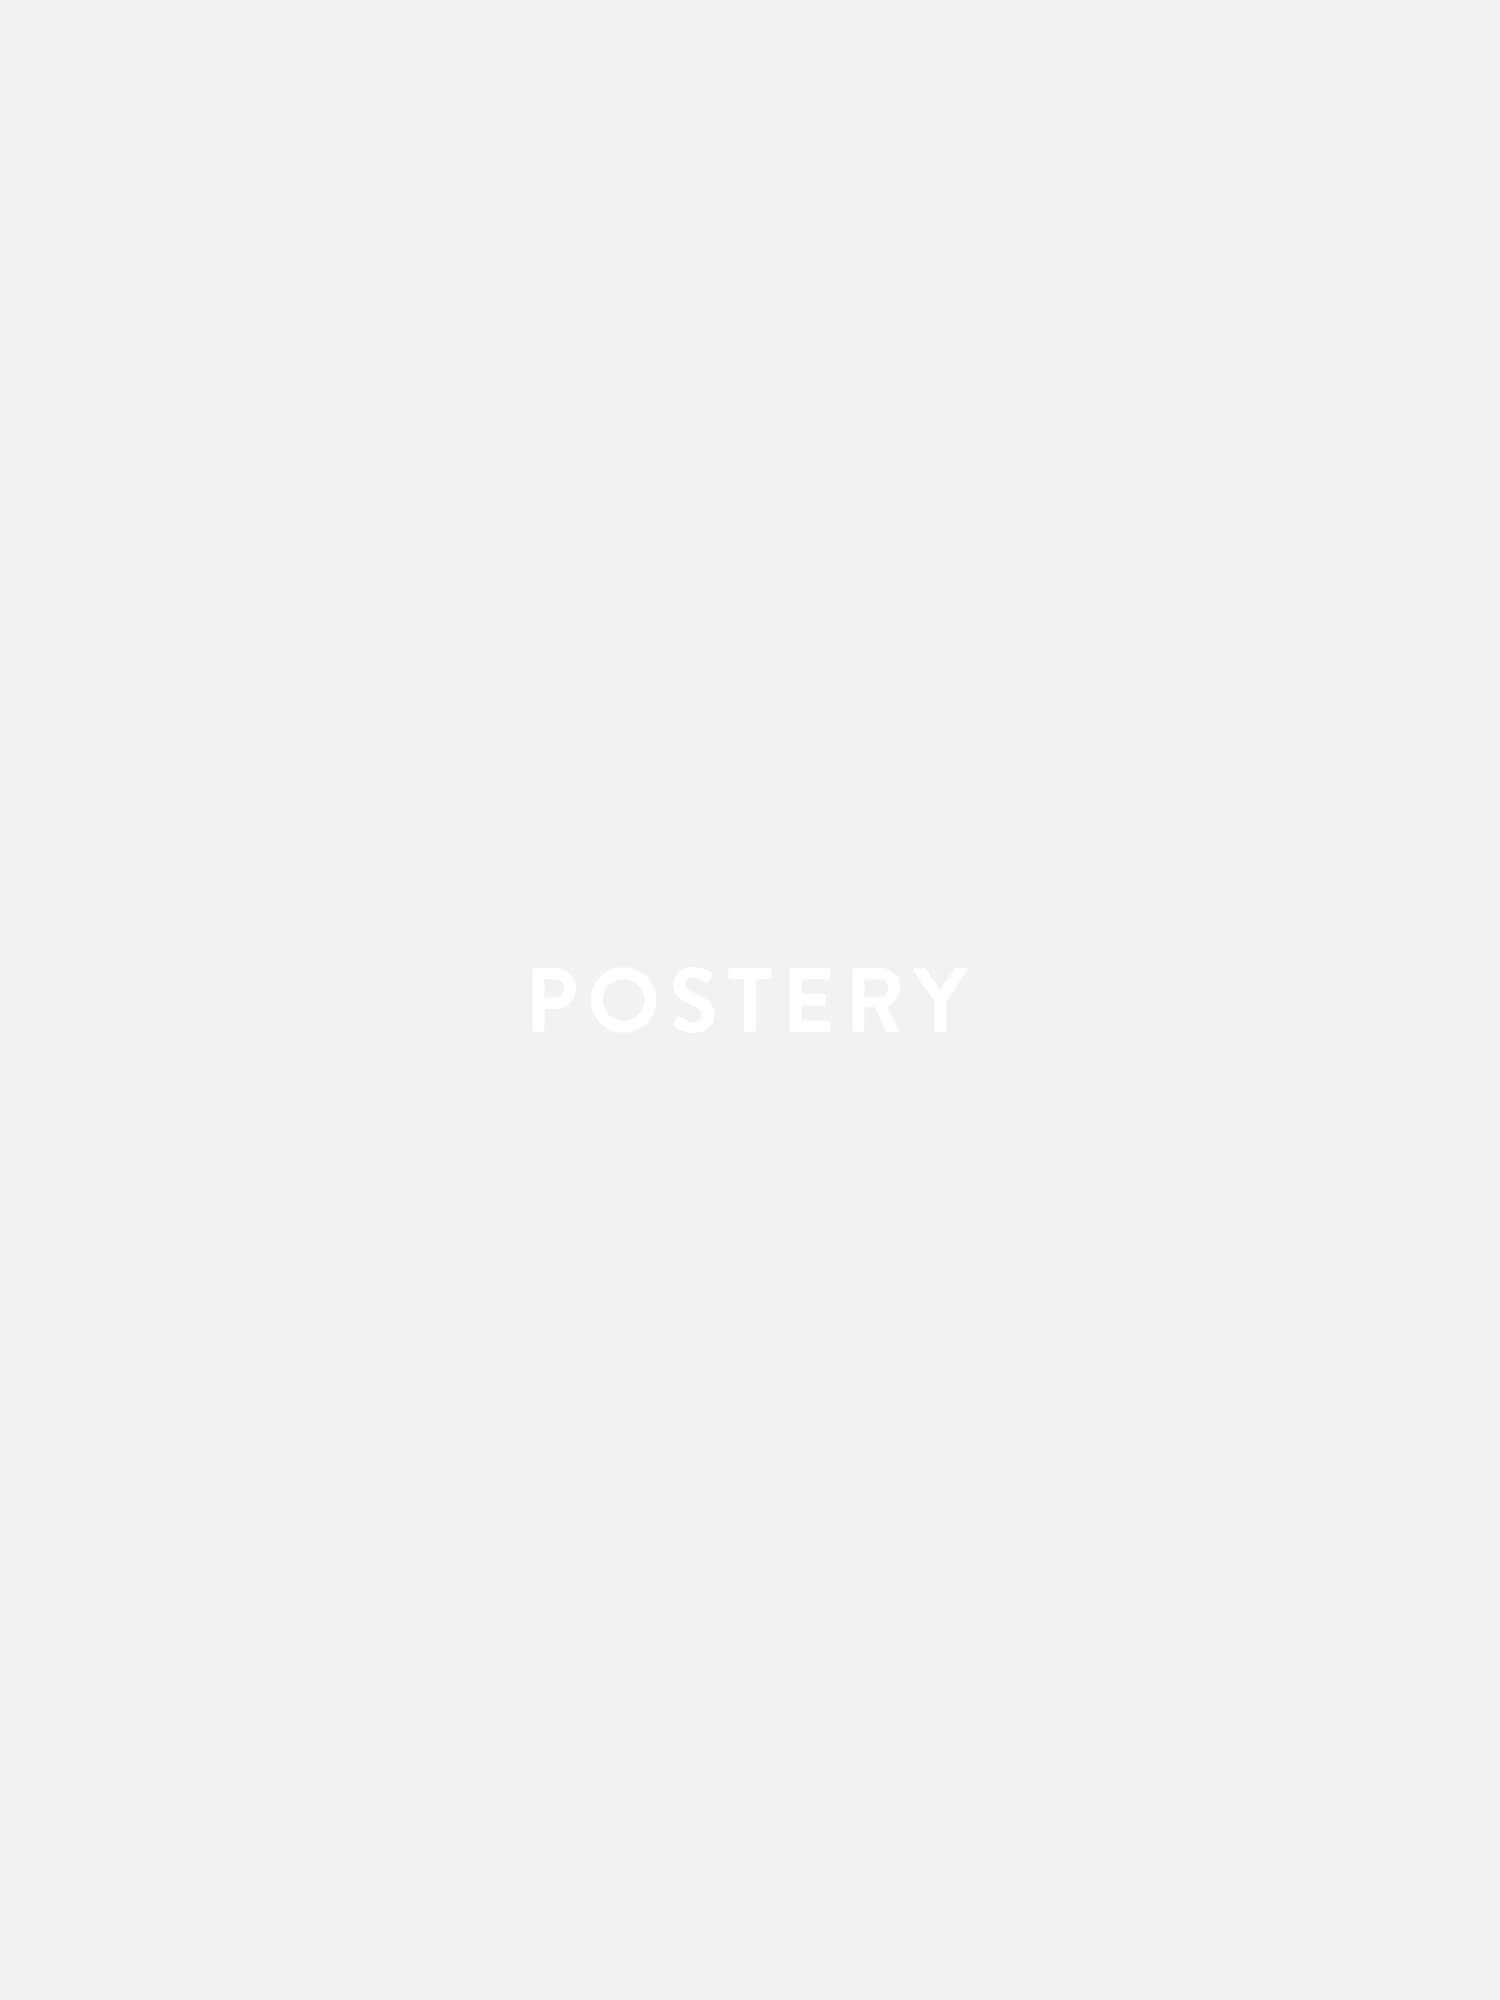 Marocco Fountain Poster